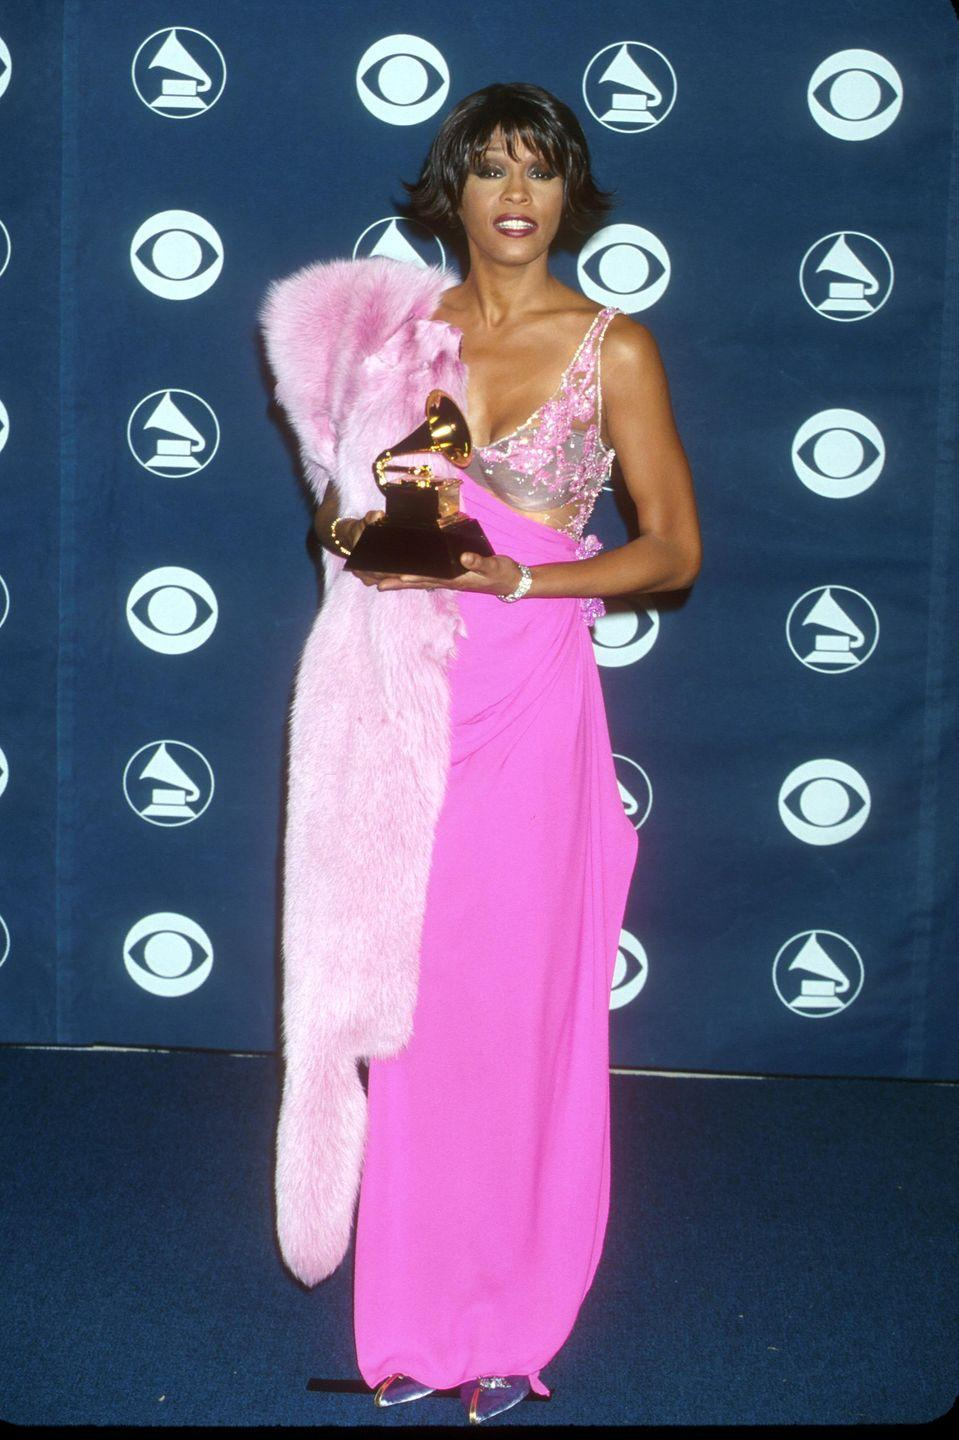 <p>Whitney looked DIVINE in her pink floor-length gown with a sheer top and a fuzzy baby pink jacket draped over her shoulder.</p>